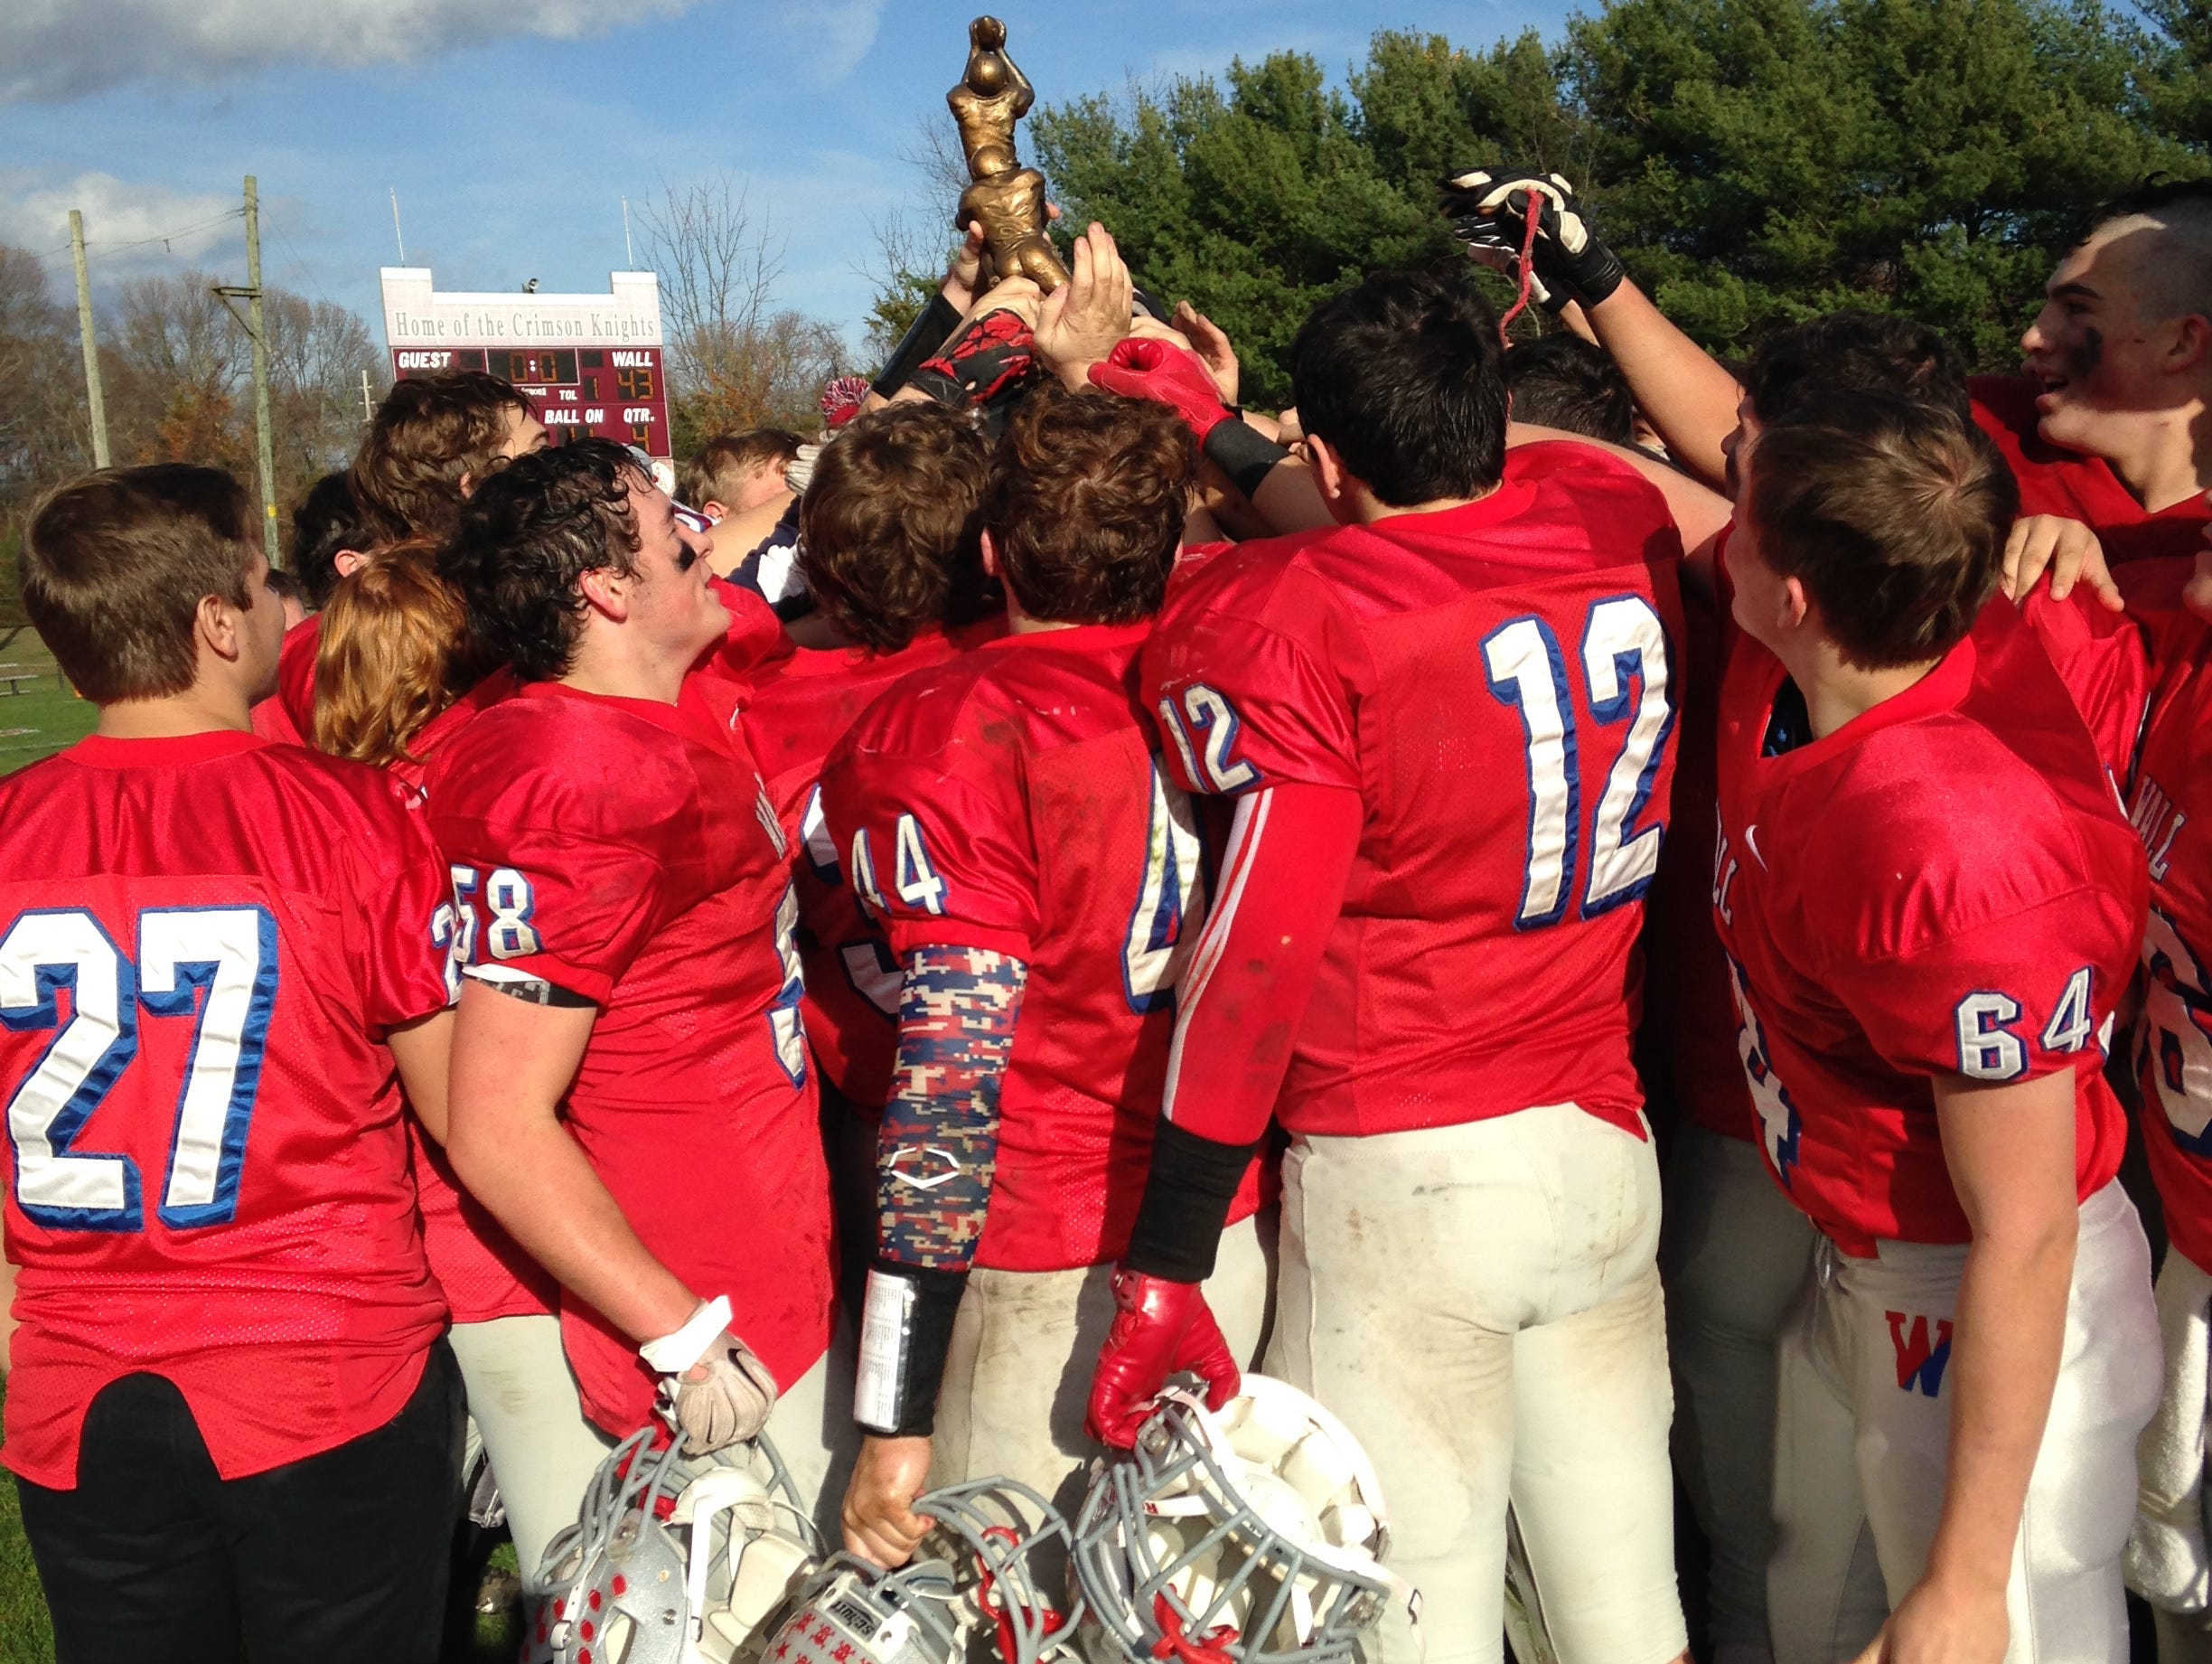 Wall celebrates the victory over Manasquan